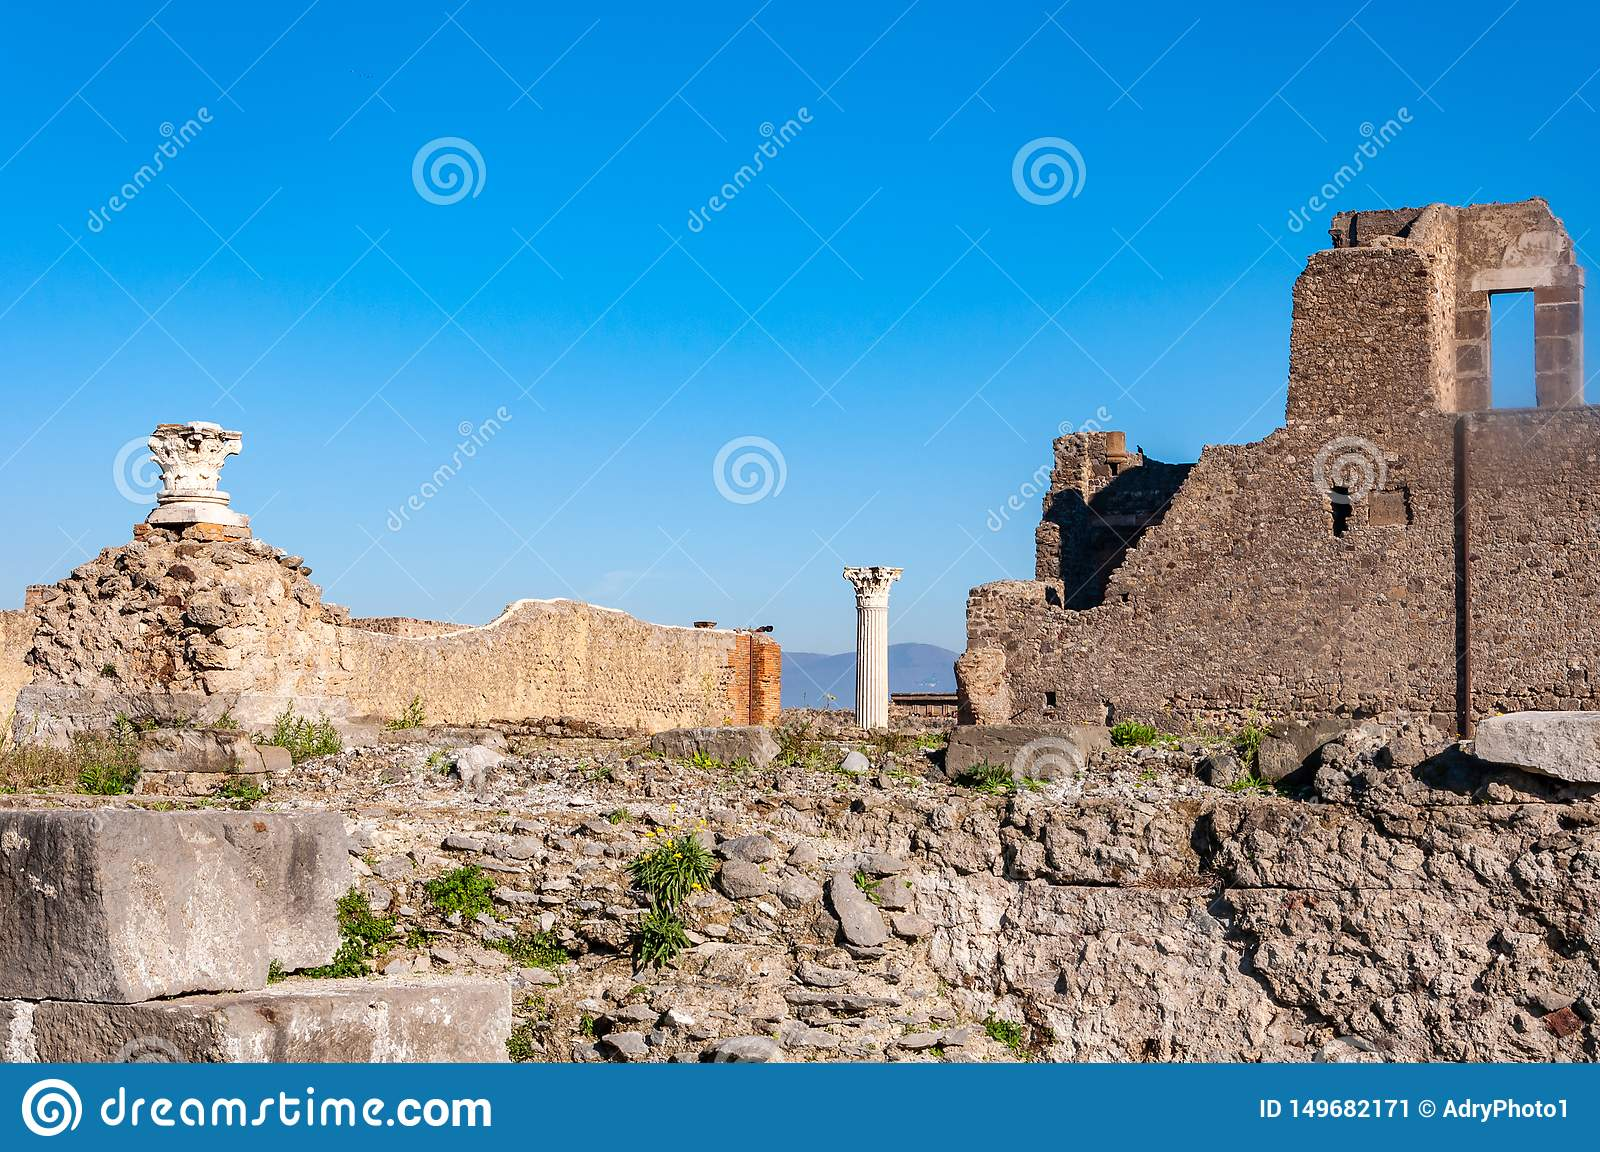 Pompeii, the best preserved archaeological site in the world, Italy